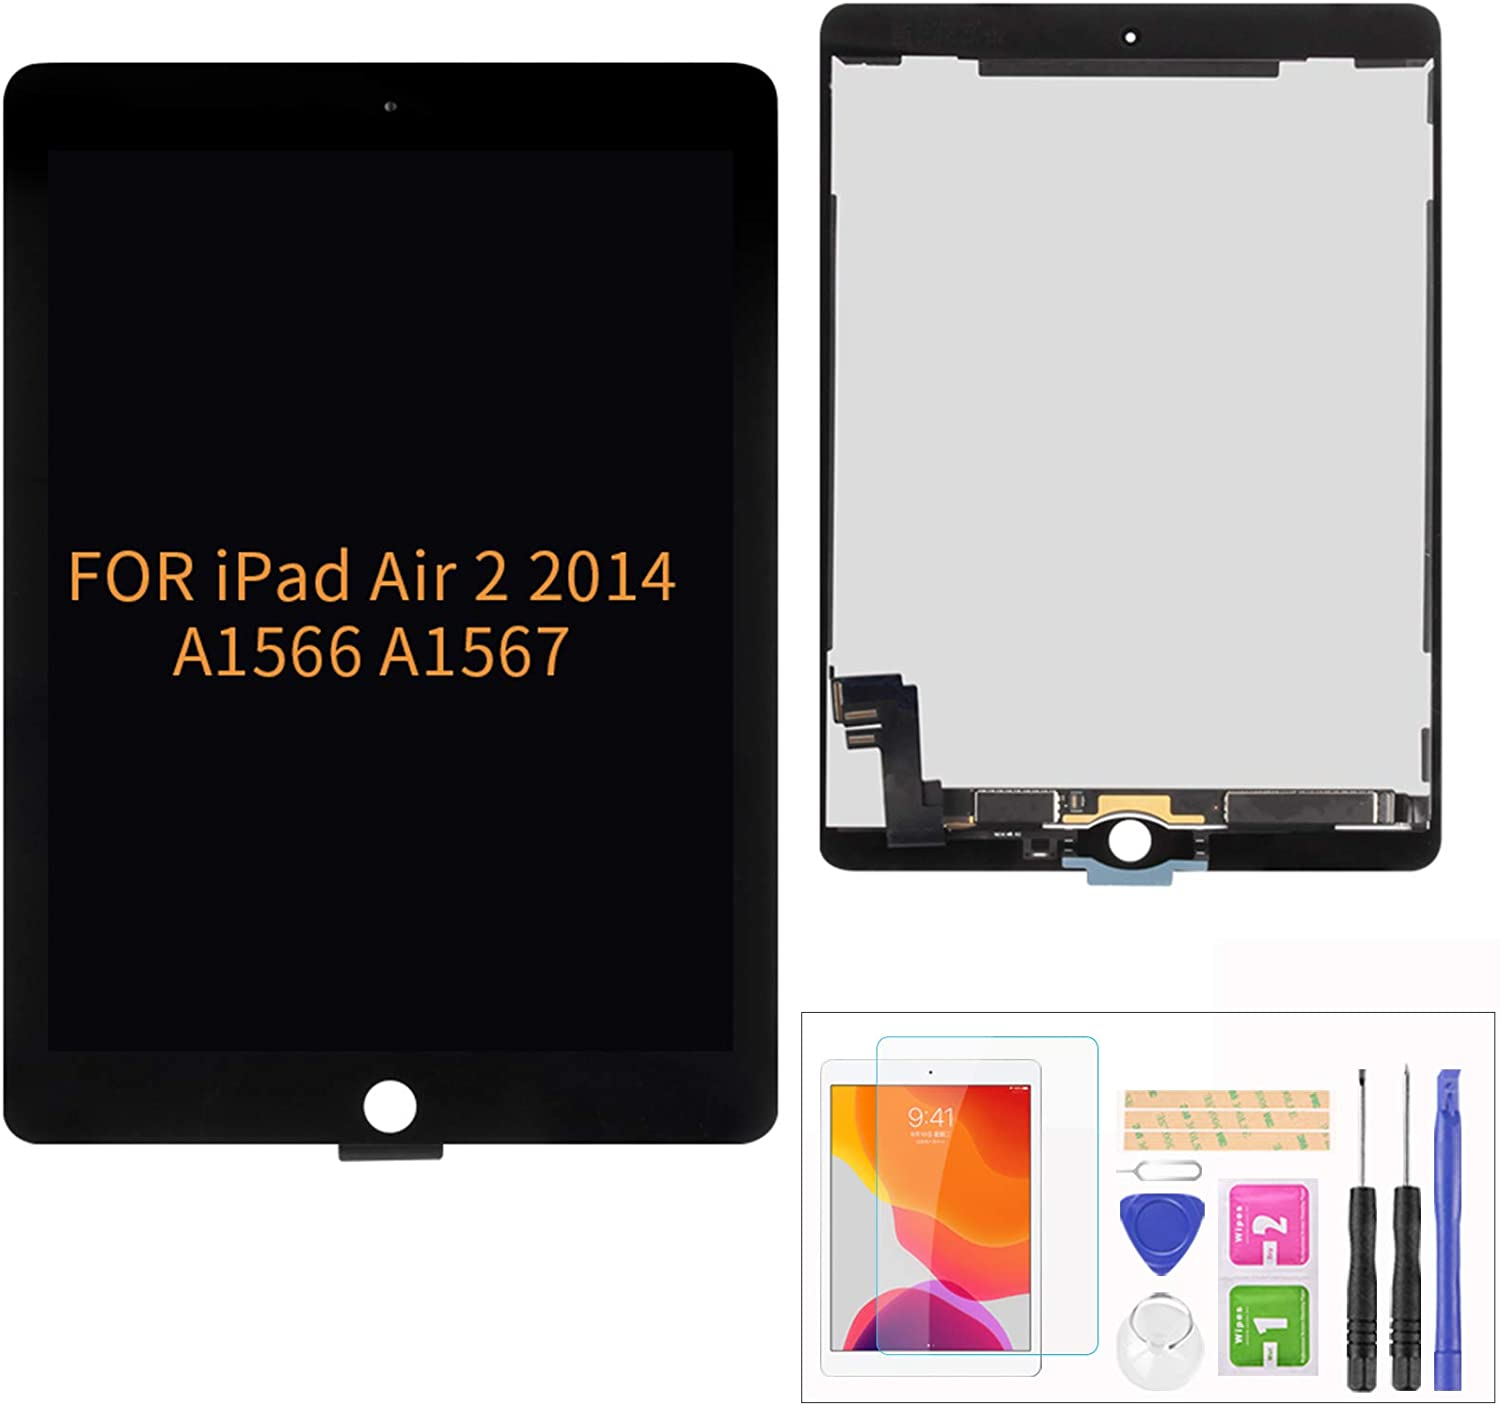 A-MIND Screen Replacement for iPad Air 2 2014 9.7